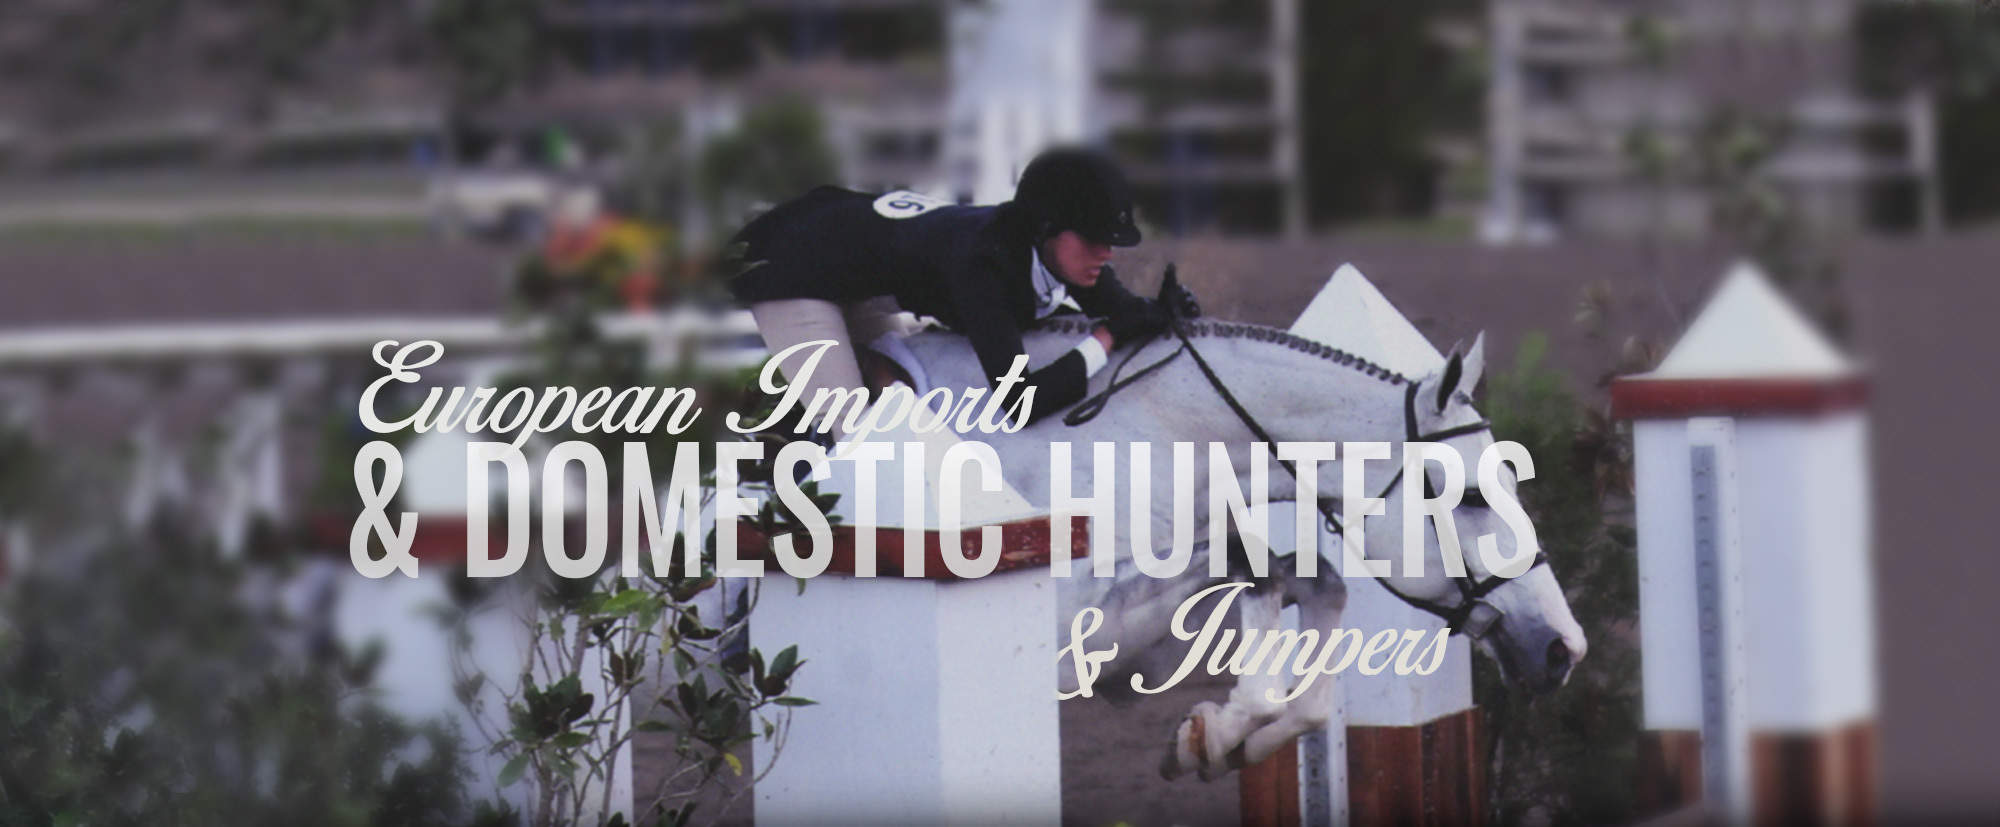 European Imports & Domestic Hunters & Jumpers Competition horses